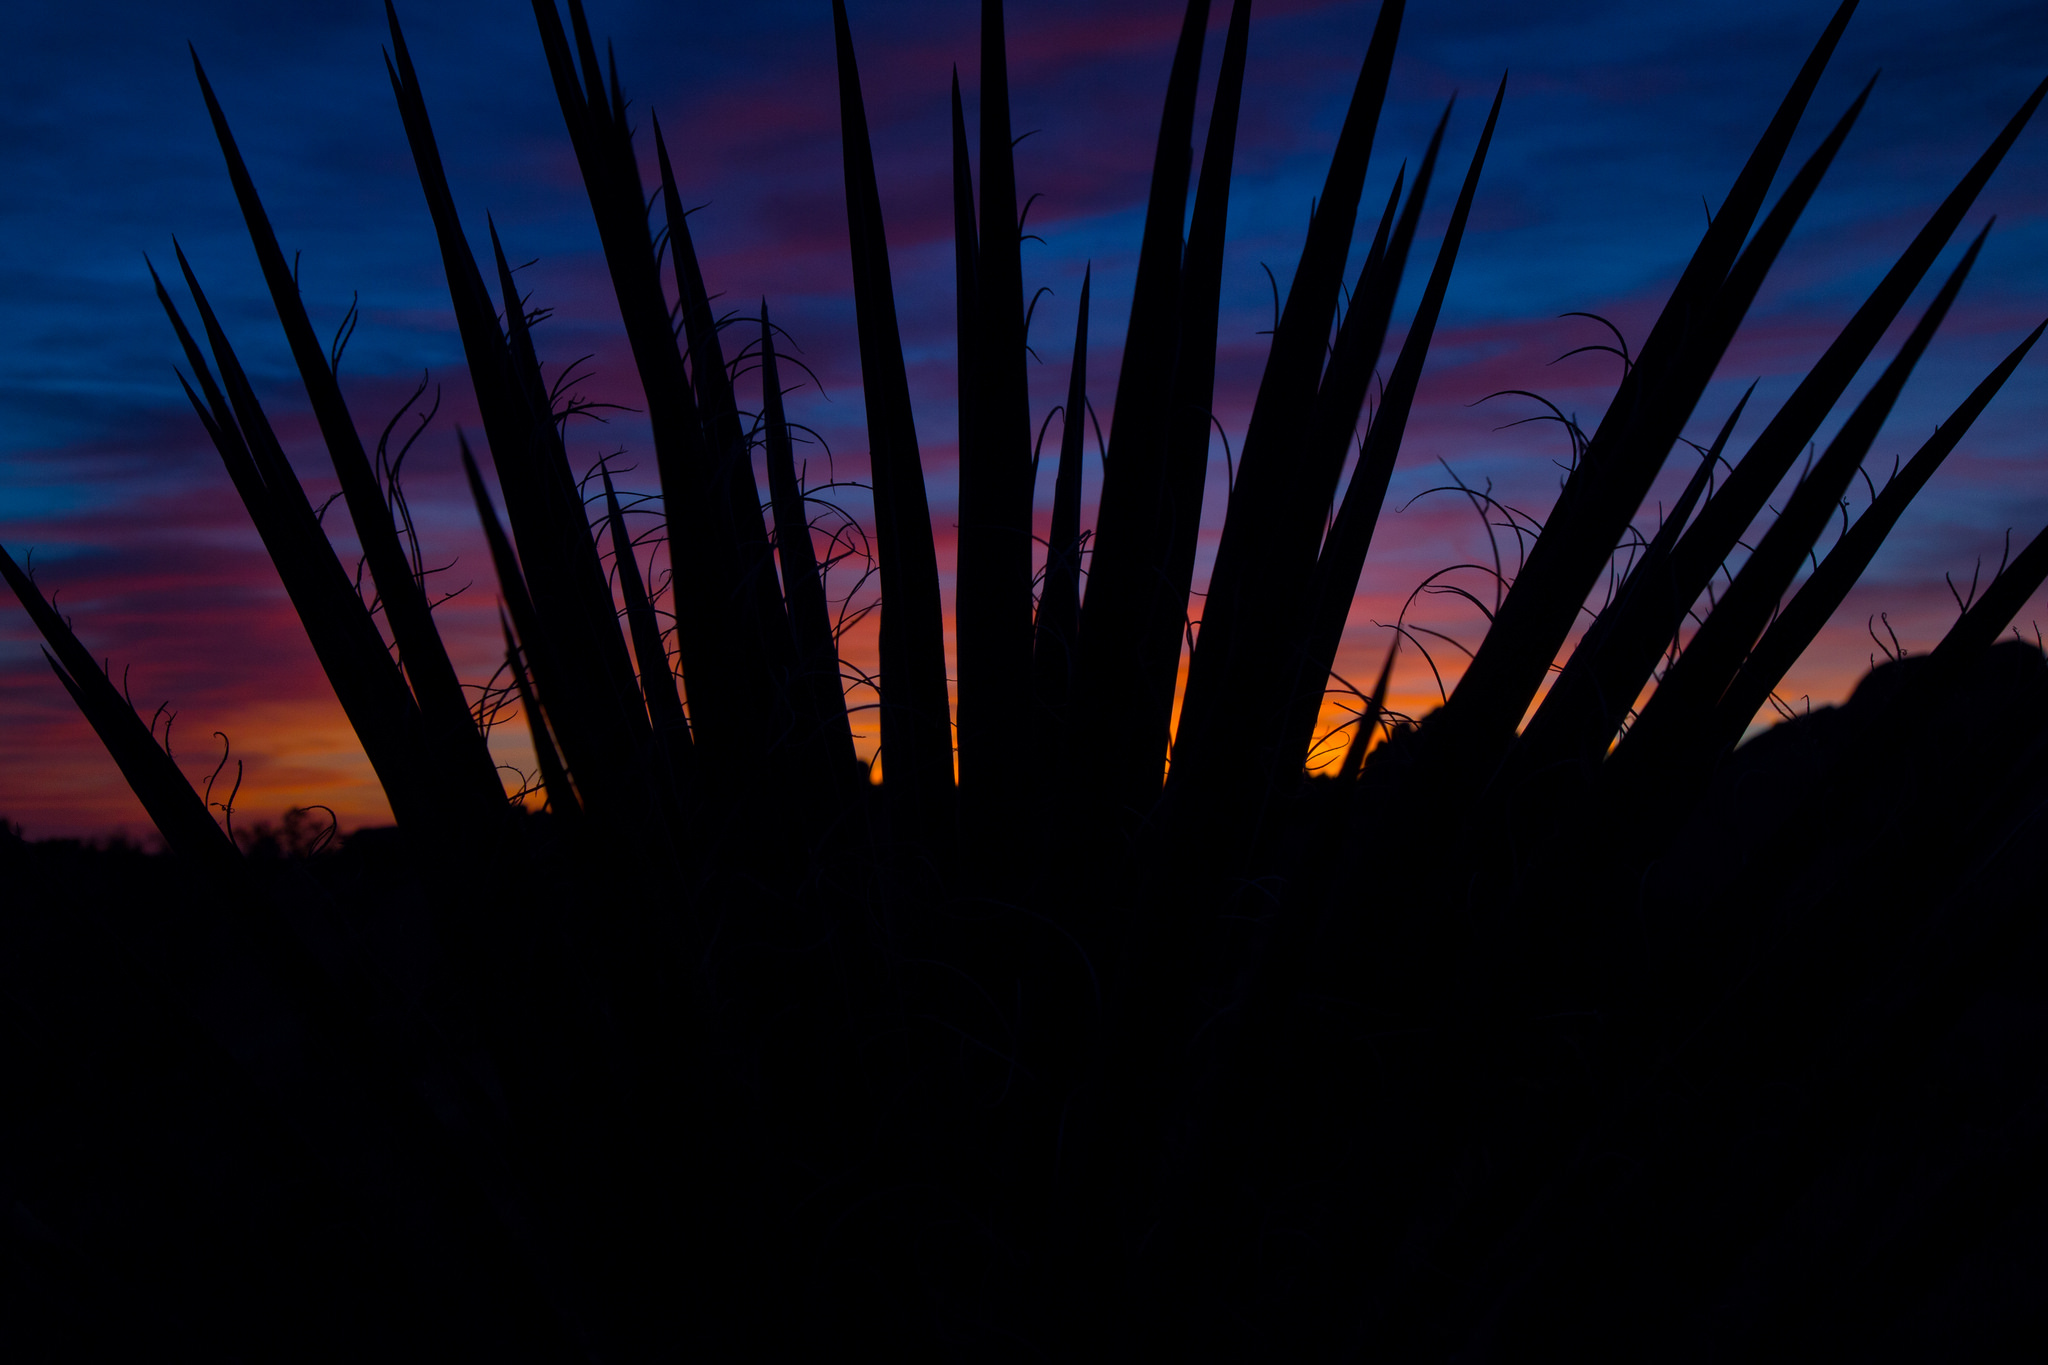 Sunrise at skull rock as seen through a yucca plant